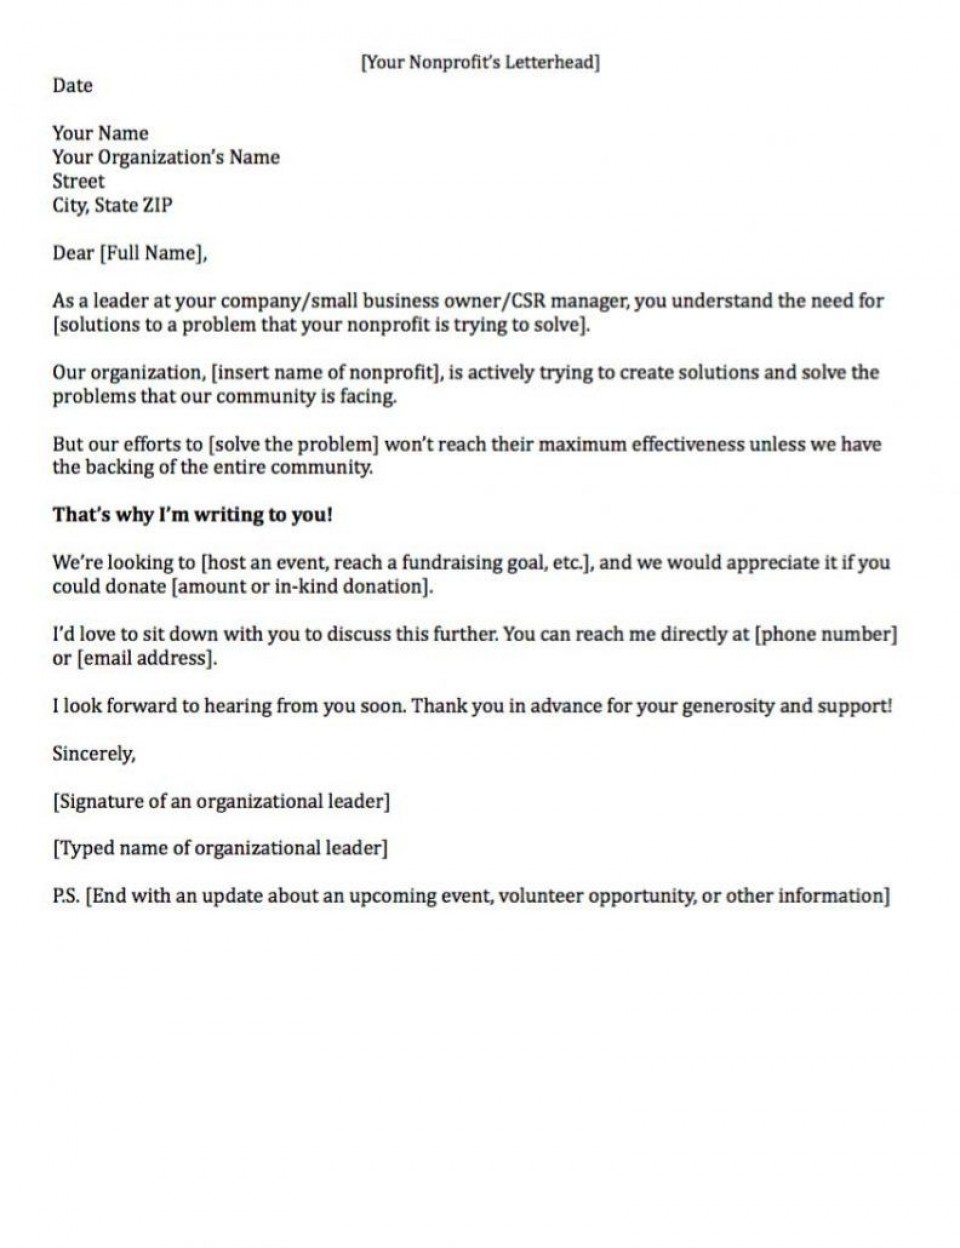 007 Remarkable Fund Raising Letter Template High Resolution  Fundraising For Mission Trip School Sample Of A Nonprofit Organization960